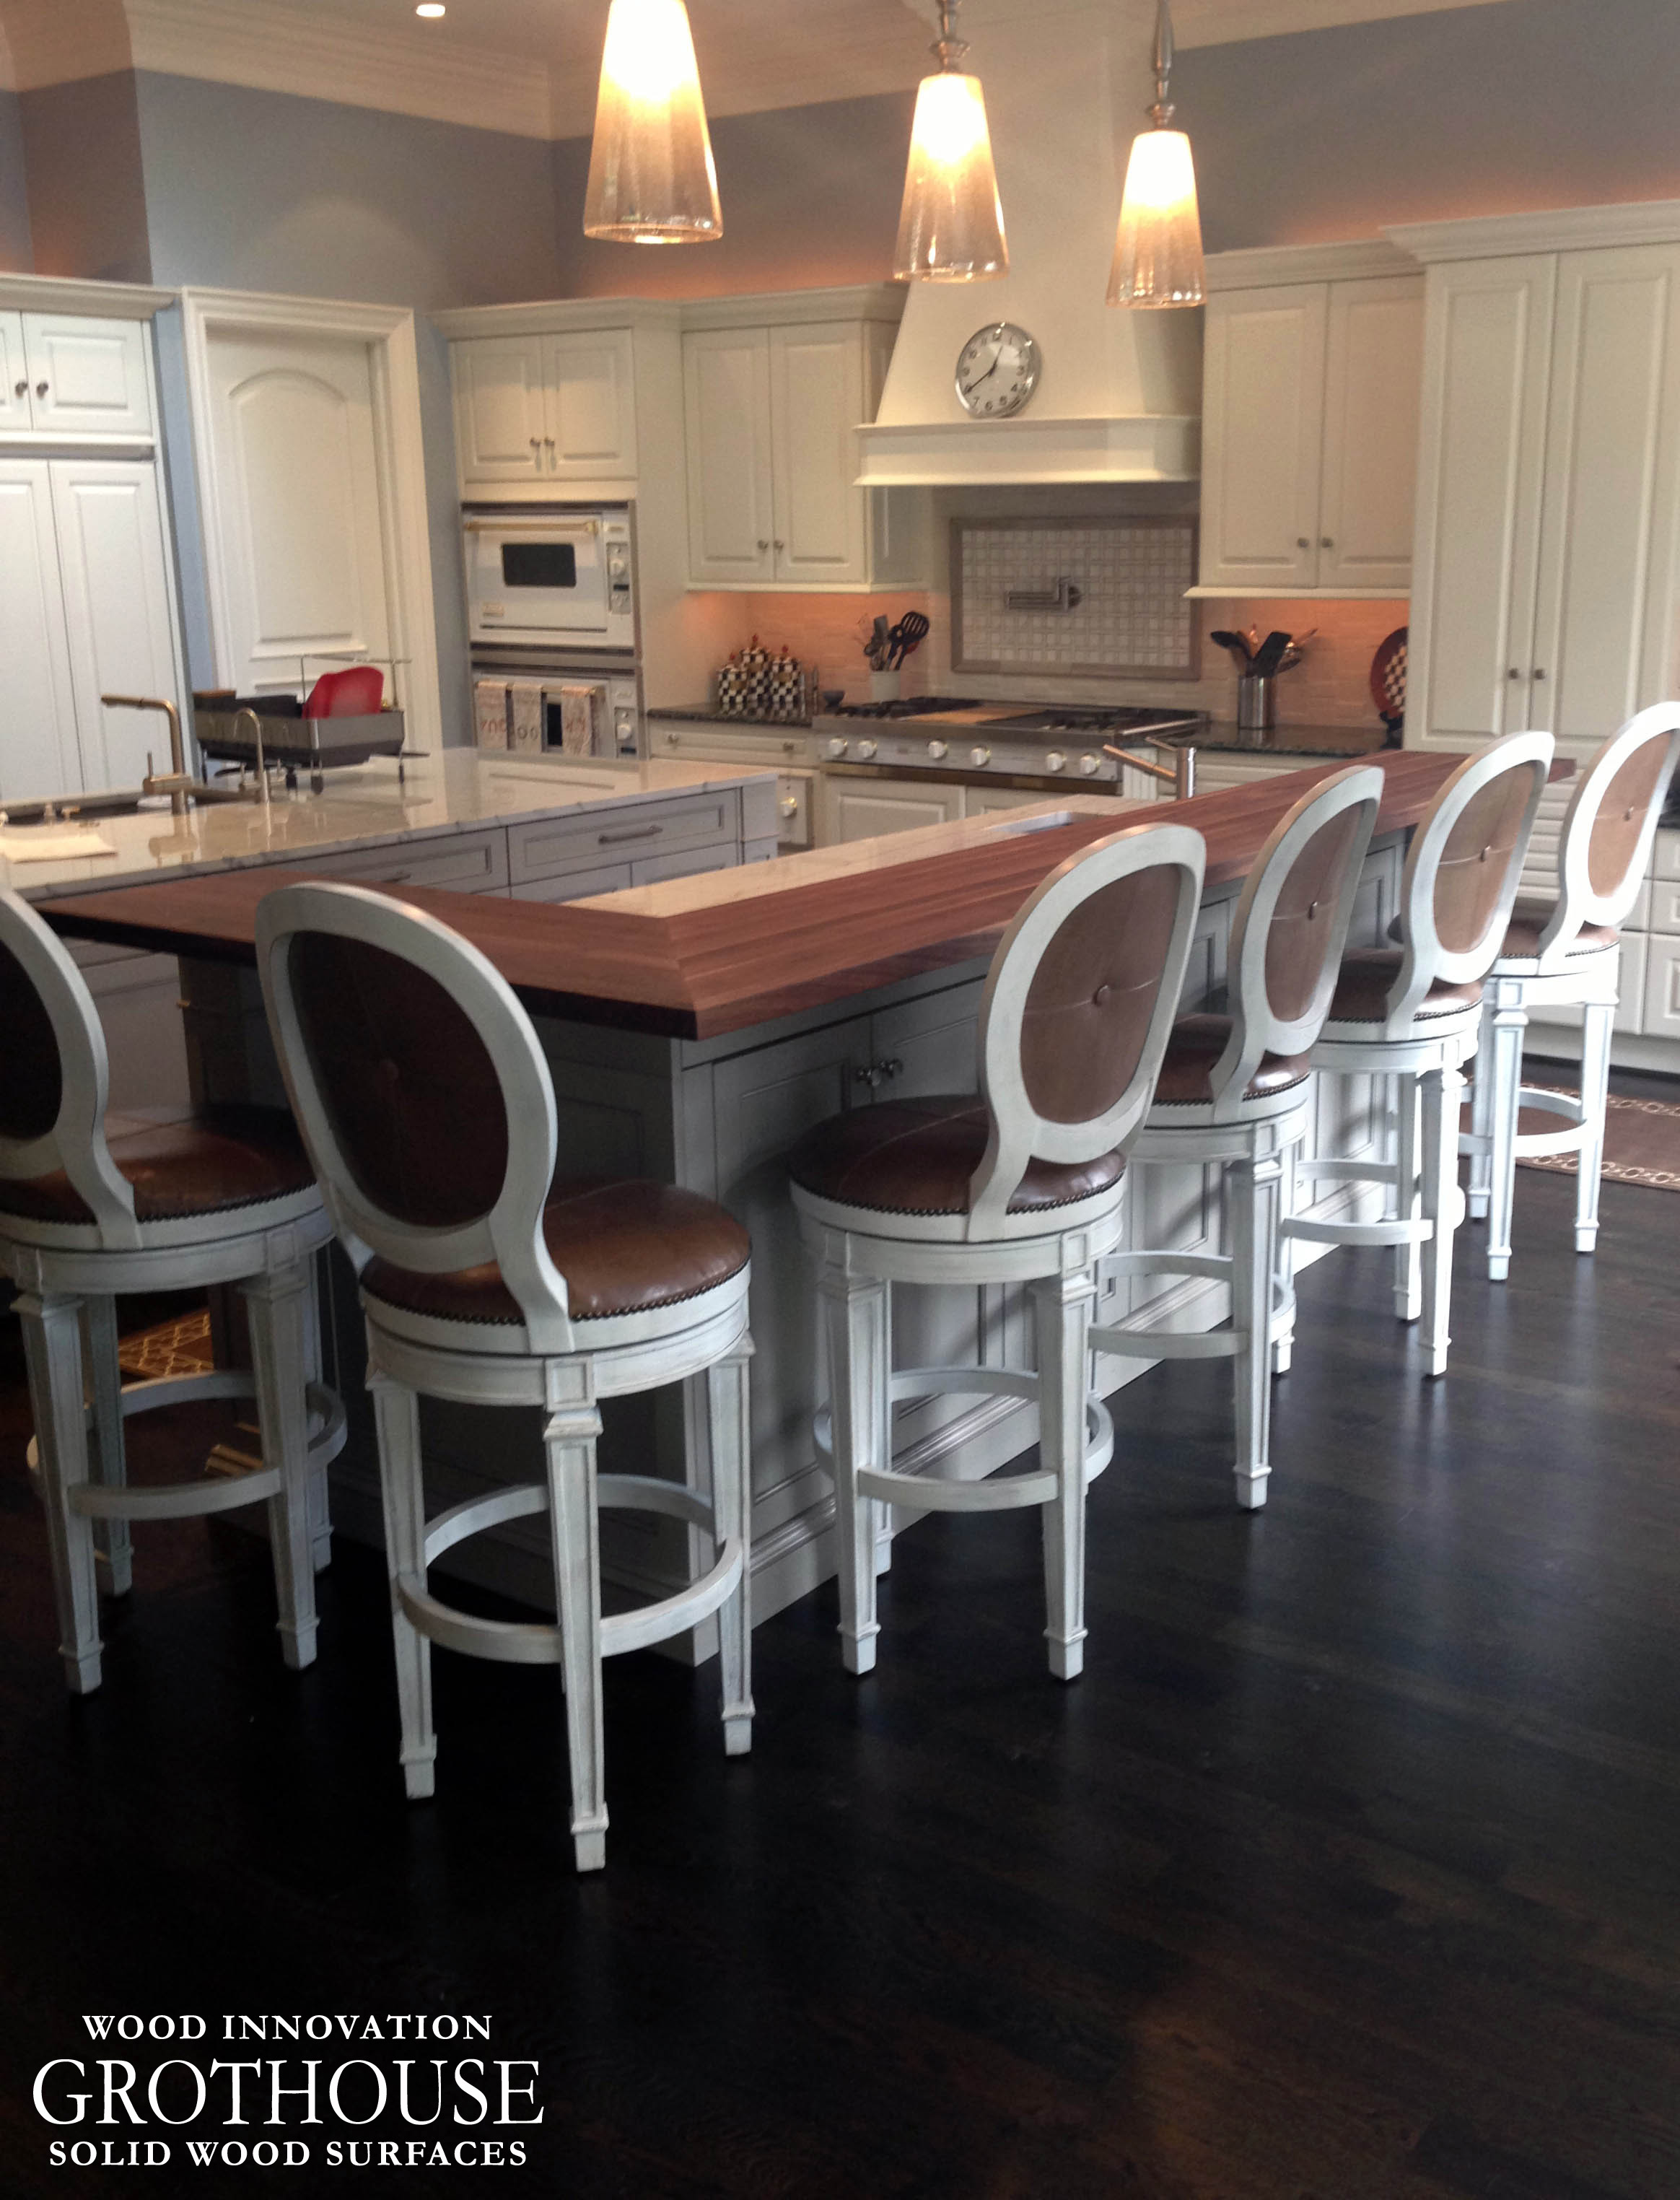 Kitchen Island Bar Ideas Raised Wood countertop with Marble